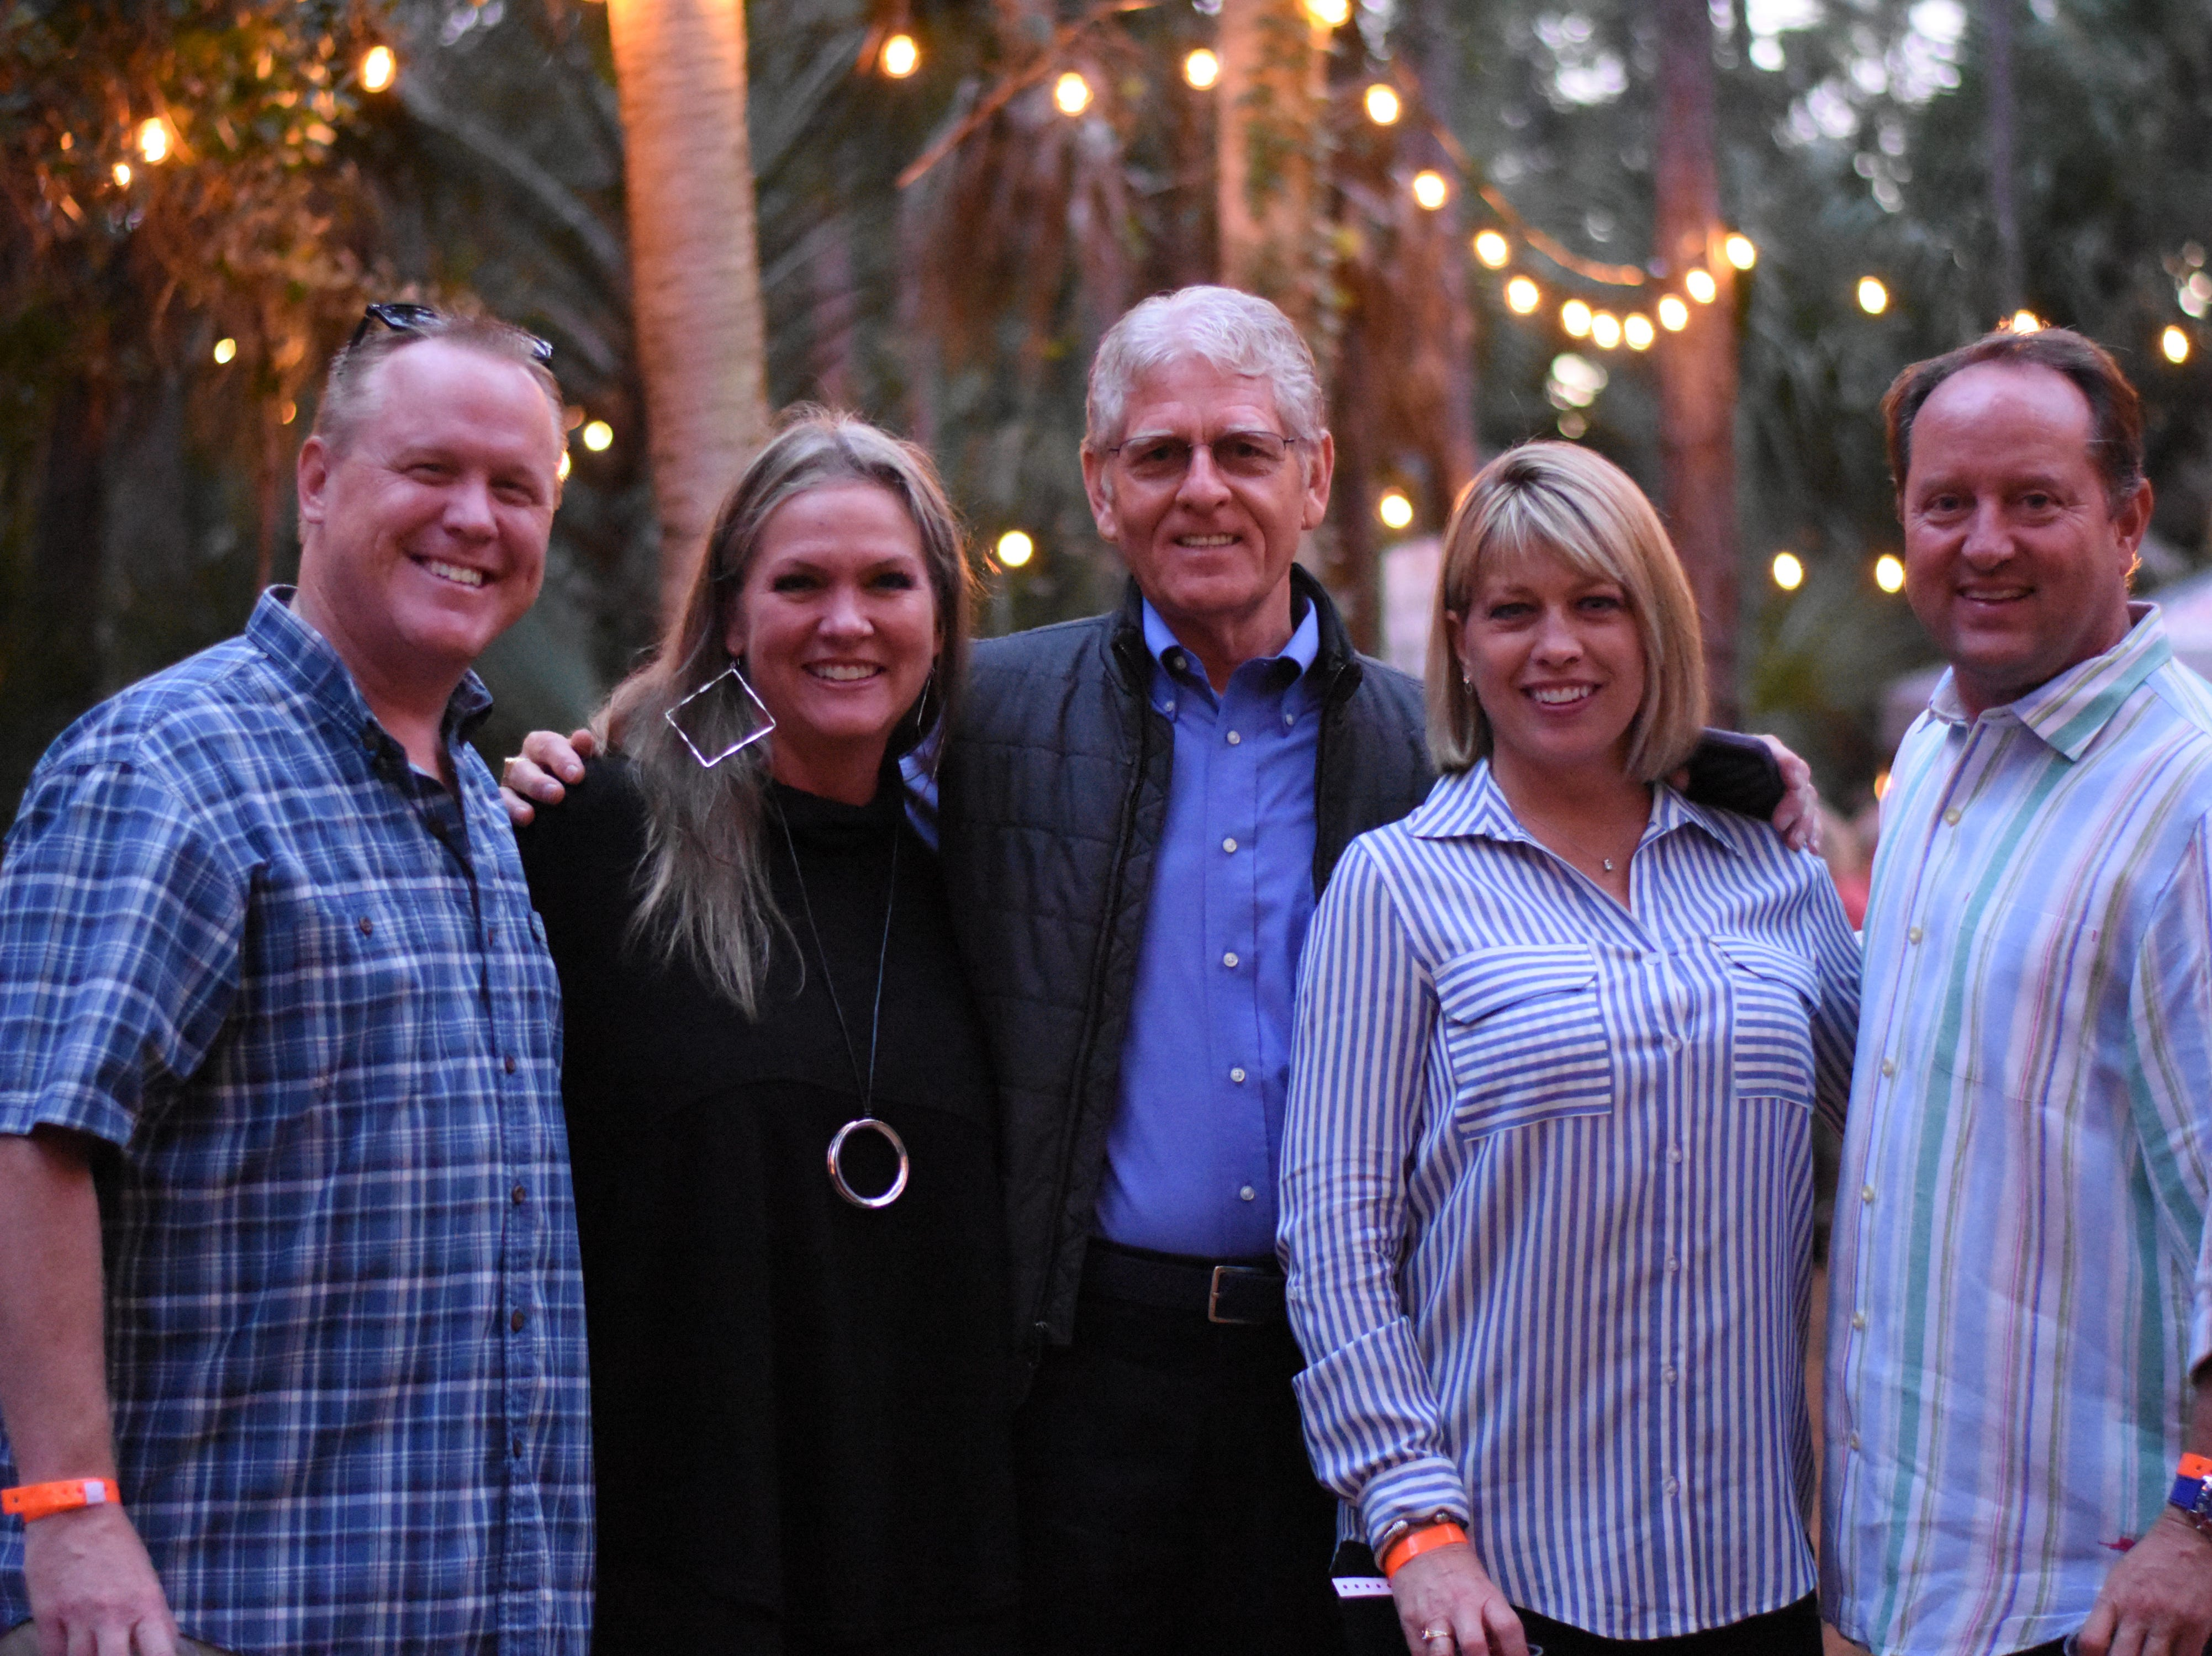 Todd and Cyndi Pokrywa, Mel Wingate, Deanna Tangeman, and Brent Peoples stand together inside the Cocoa Village walk through in the Premium Club at 2018's Jazzoo.